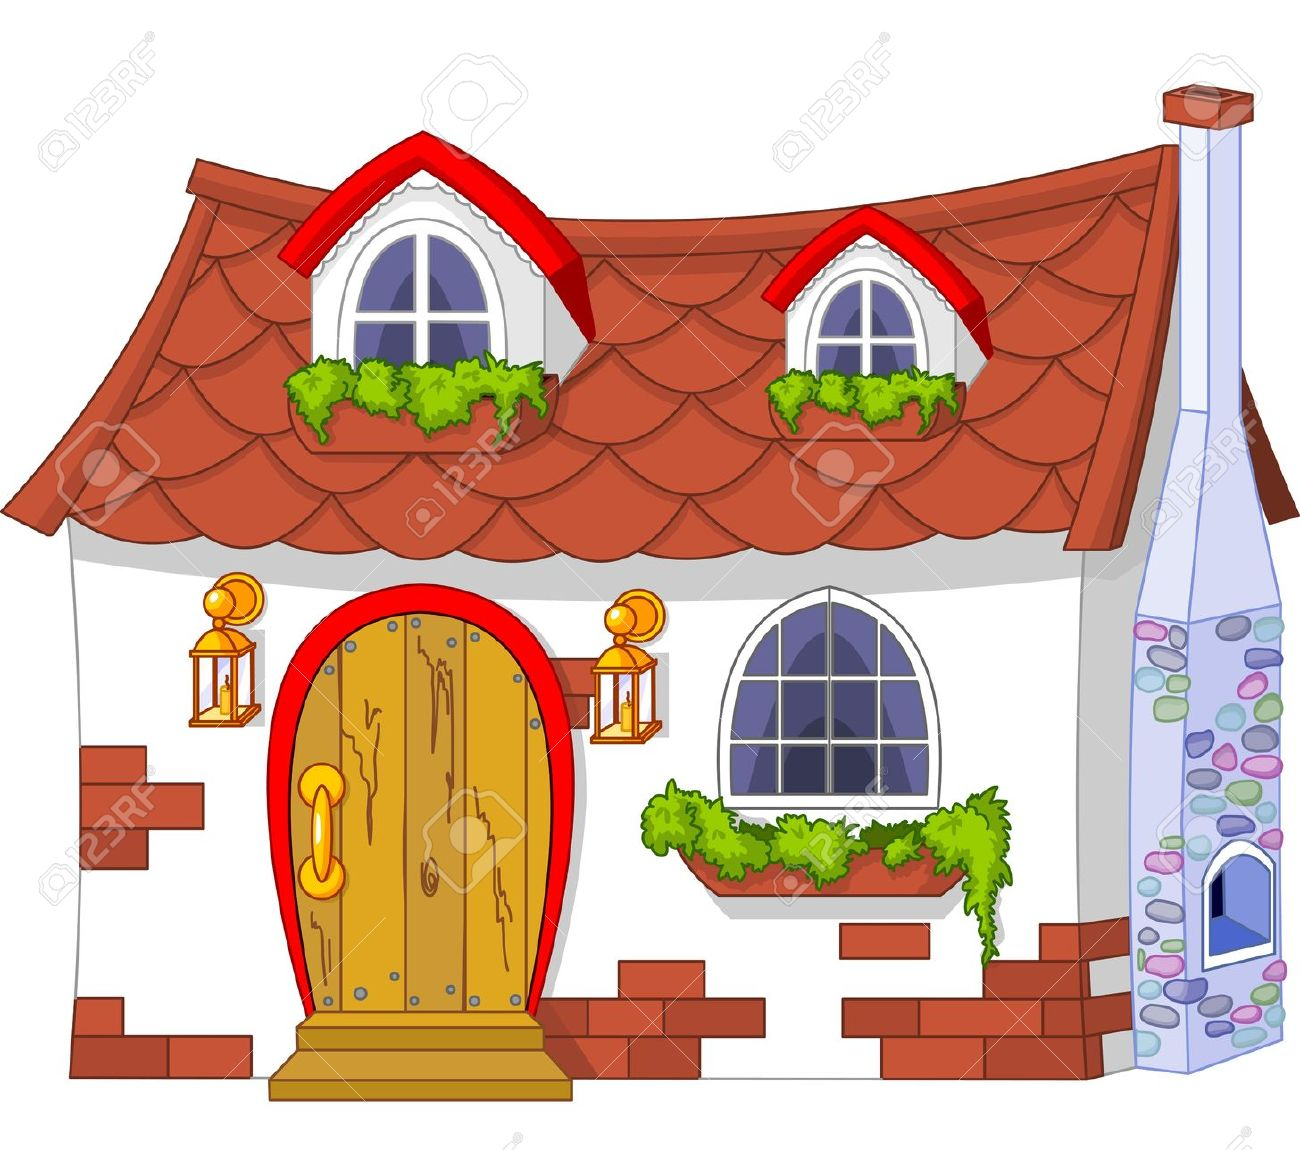 Cute house clipart 7 » Clipart Station.